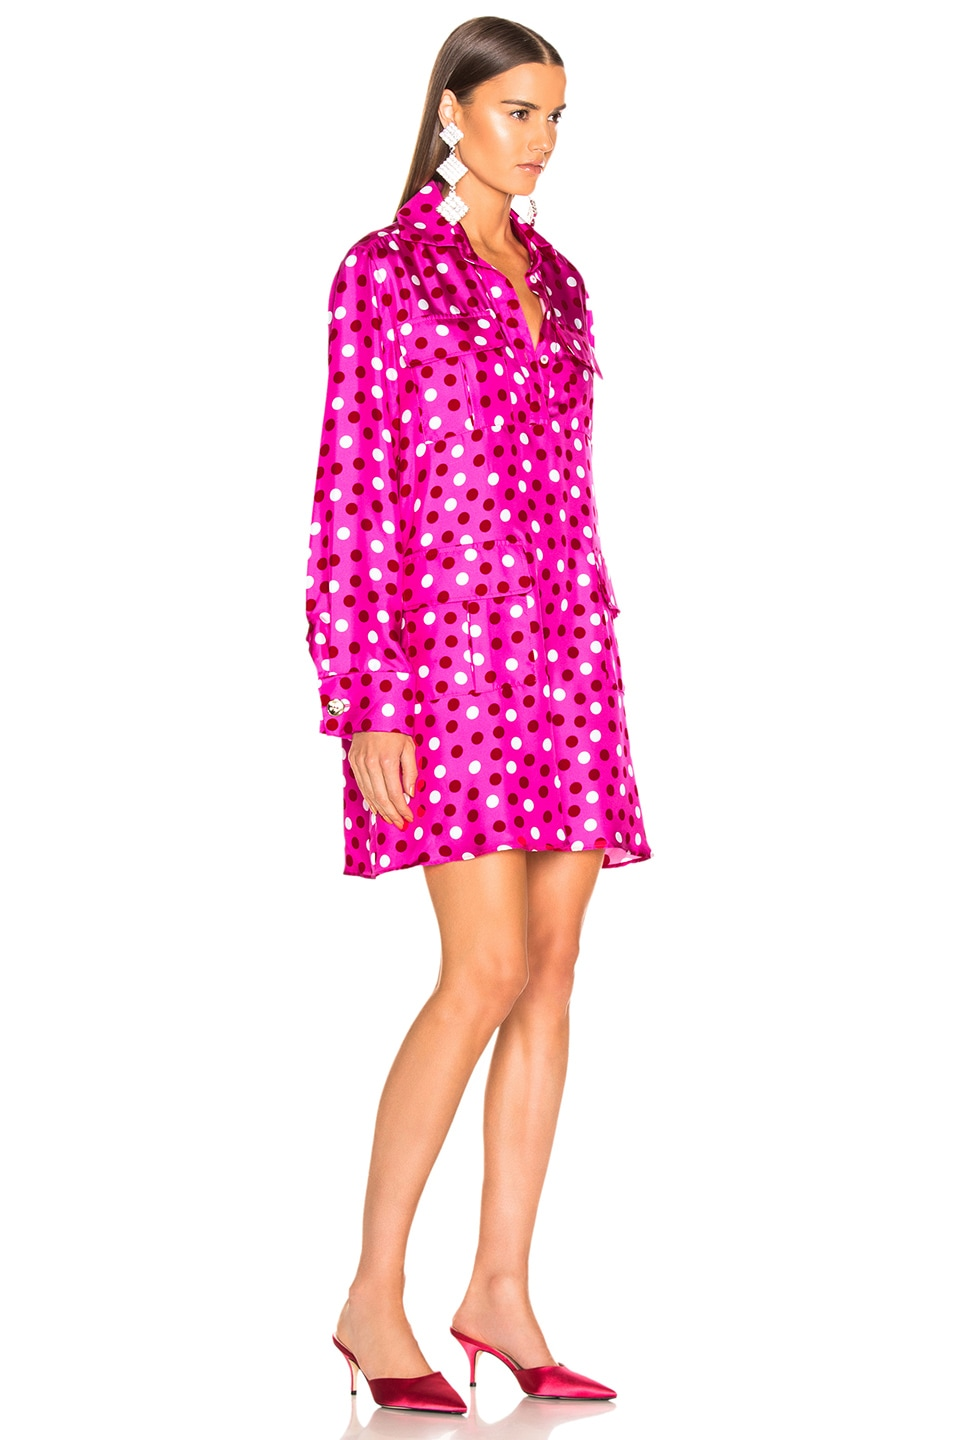 Image 3 of Maggie Marilyn Heat Of The Moment Dress in Pink, White & Red Polka Dot